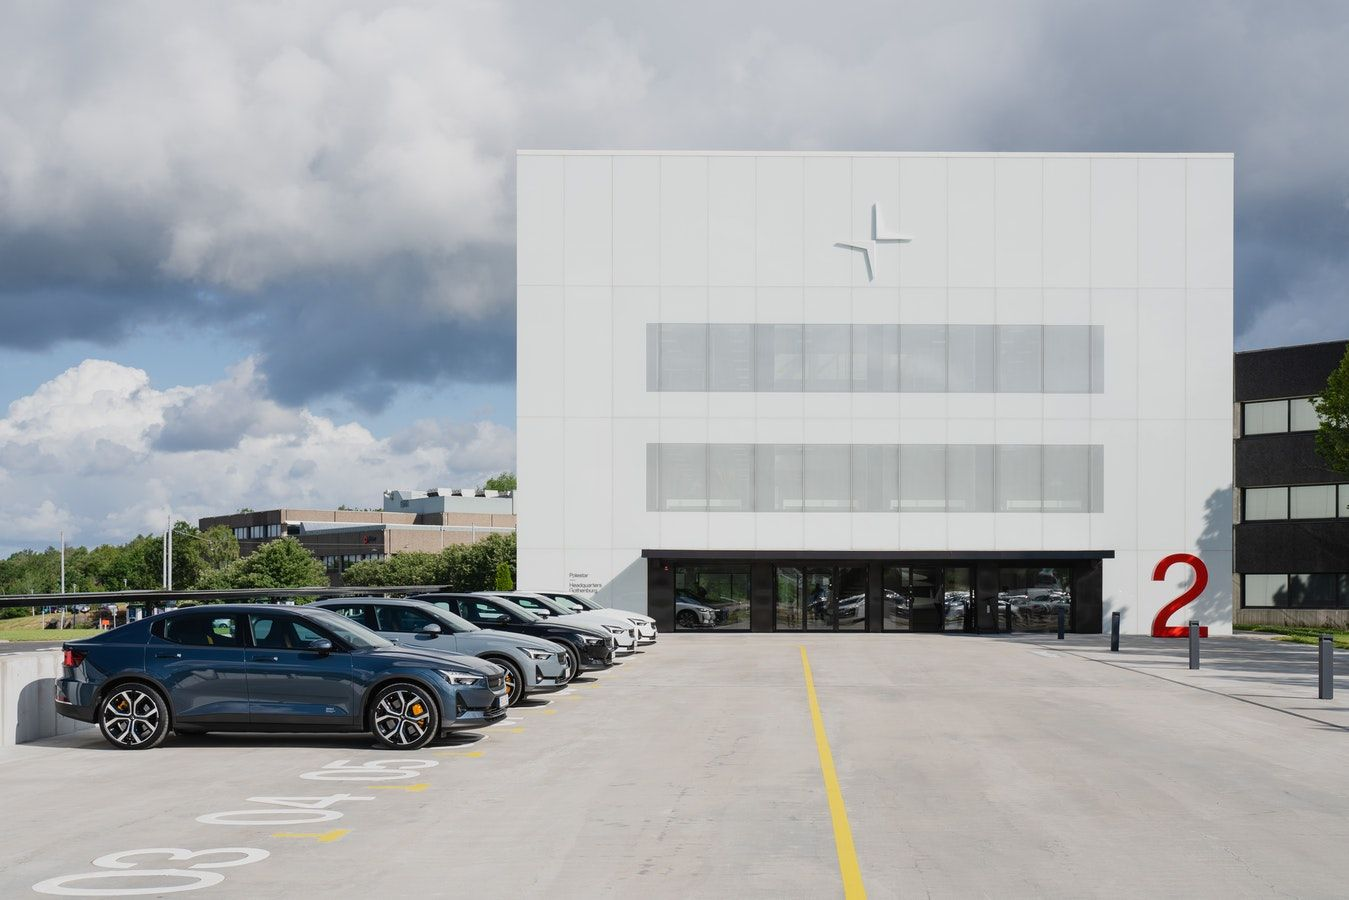 World EV Day is September 9th. And Polestar is a founding member